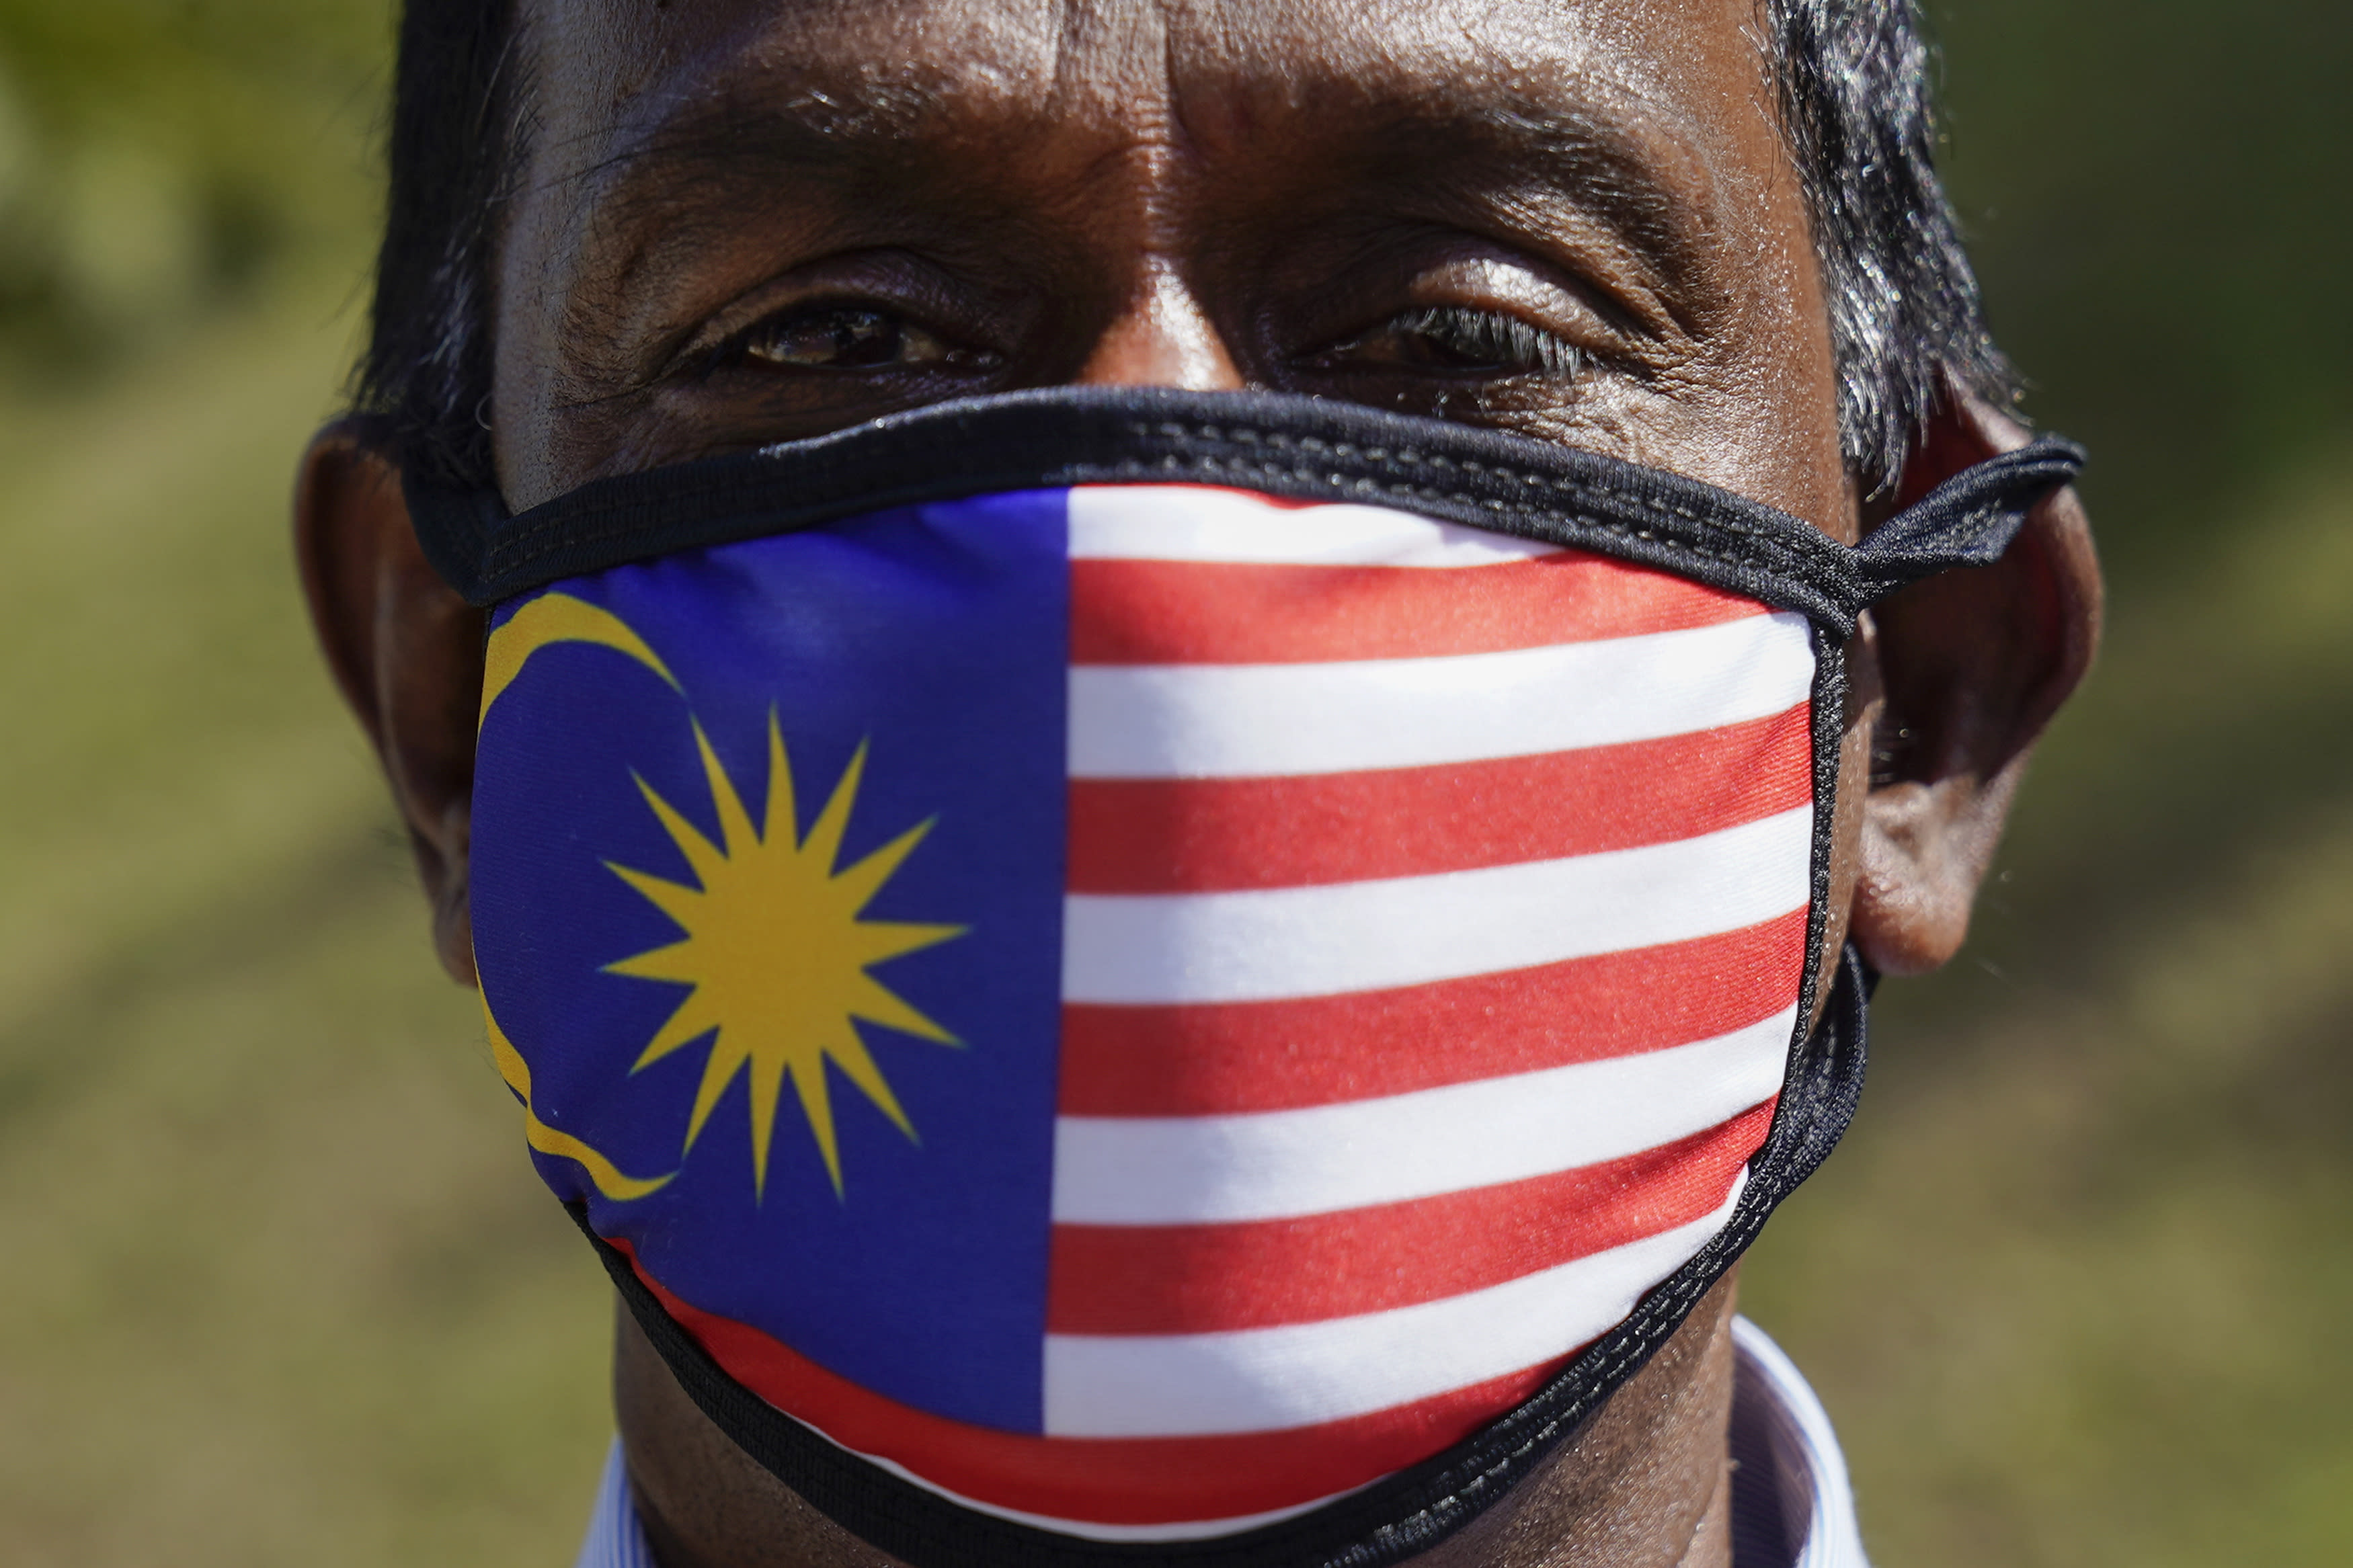 A supporter of People's Justice Party wearing a national flag face mask as he gathers with others outside the National Palace in Kuala Lumpur, Malaysia, Wednesday, Feb. 26, 2020. Malaysia's ruling alliance collapsed this week after 94-year-old Prime Minister Mahathir Mohamad resigned and dozens of lawmakers defected in an audacious attempt to form a new government. The political earthquake occurred less than two years after the alliance won a historic election that ousted a corruption-tainted coalition that had ruled for 61 years. (AP Photo/Vincent Thian)